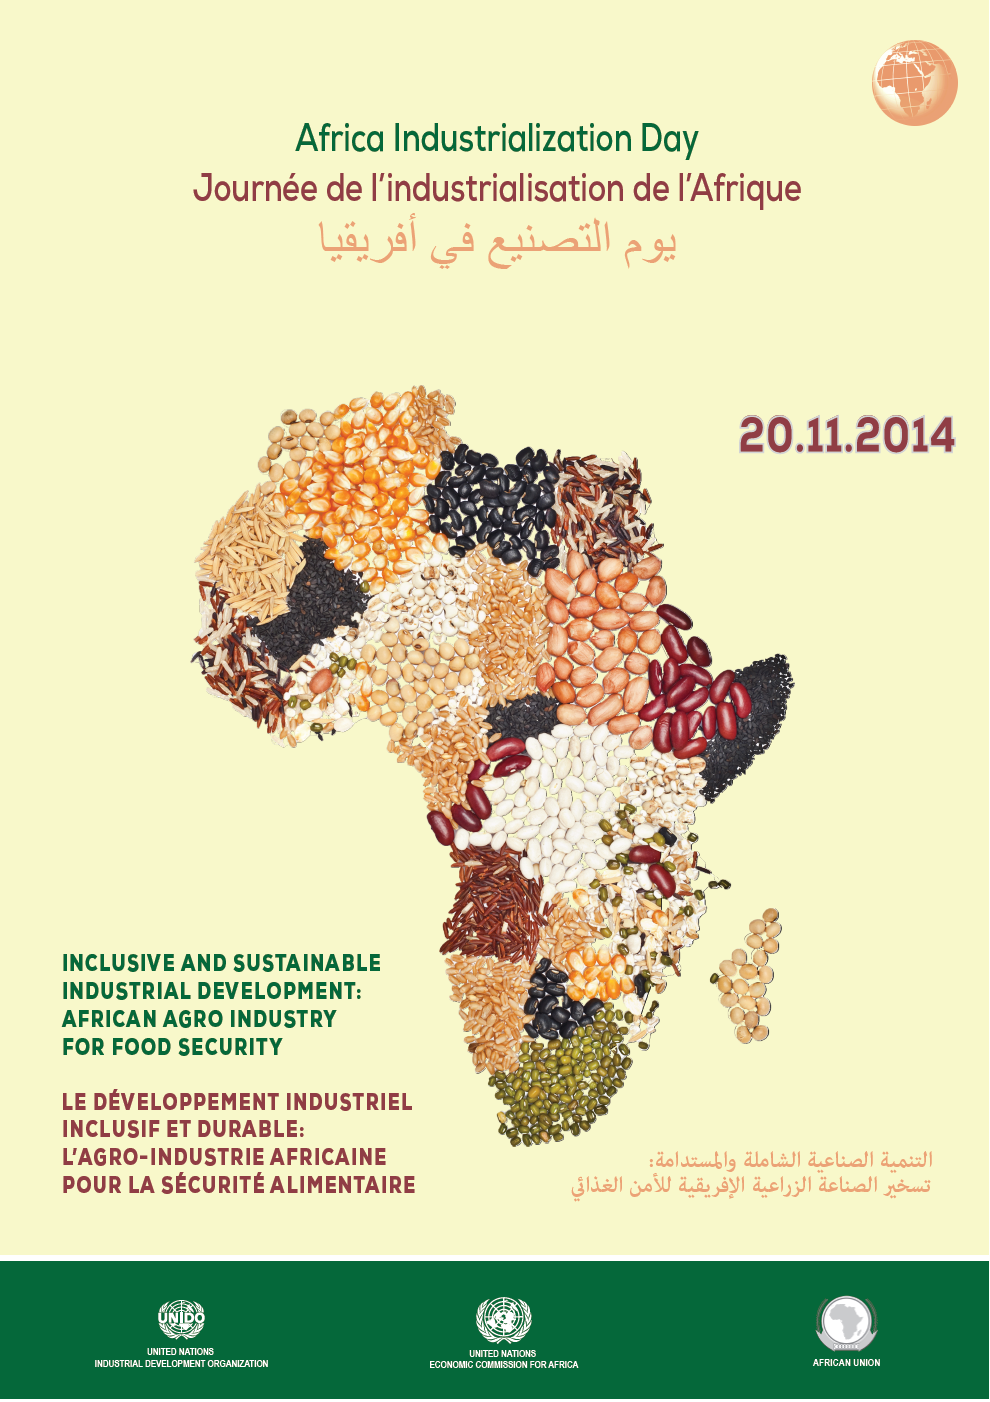 Parmionova Africa Industrialization Day 2014 November 20th